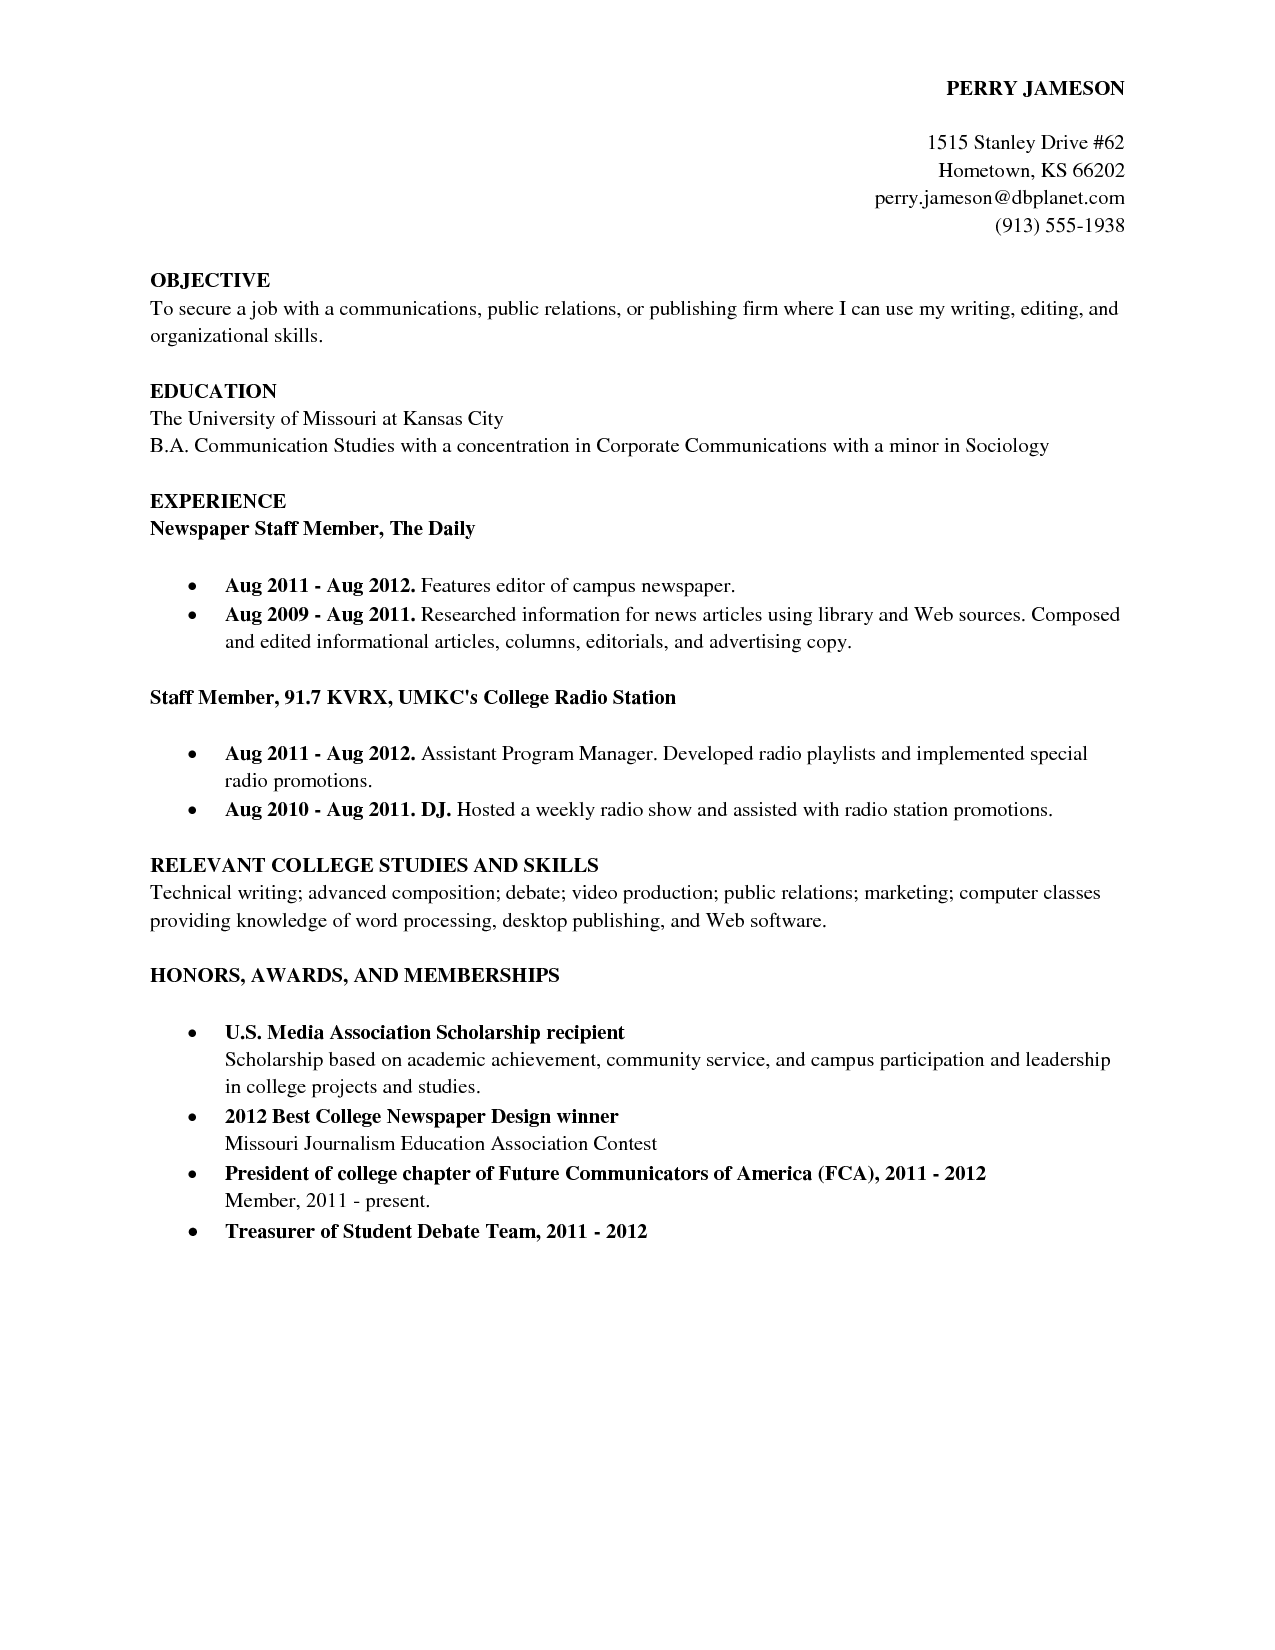 Resume Template College Student Simple How To Write Resume College Student Free Resume Builder Resume